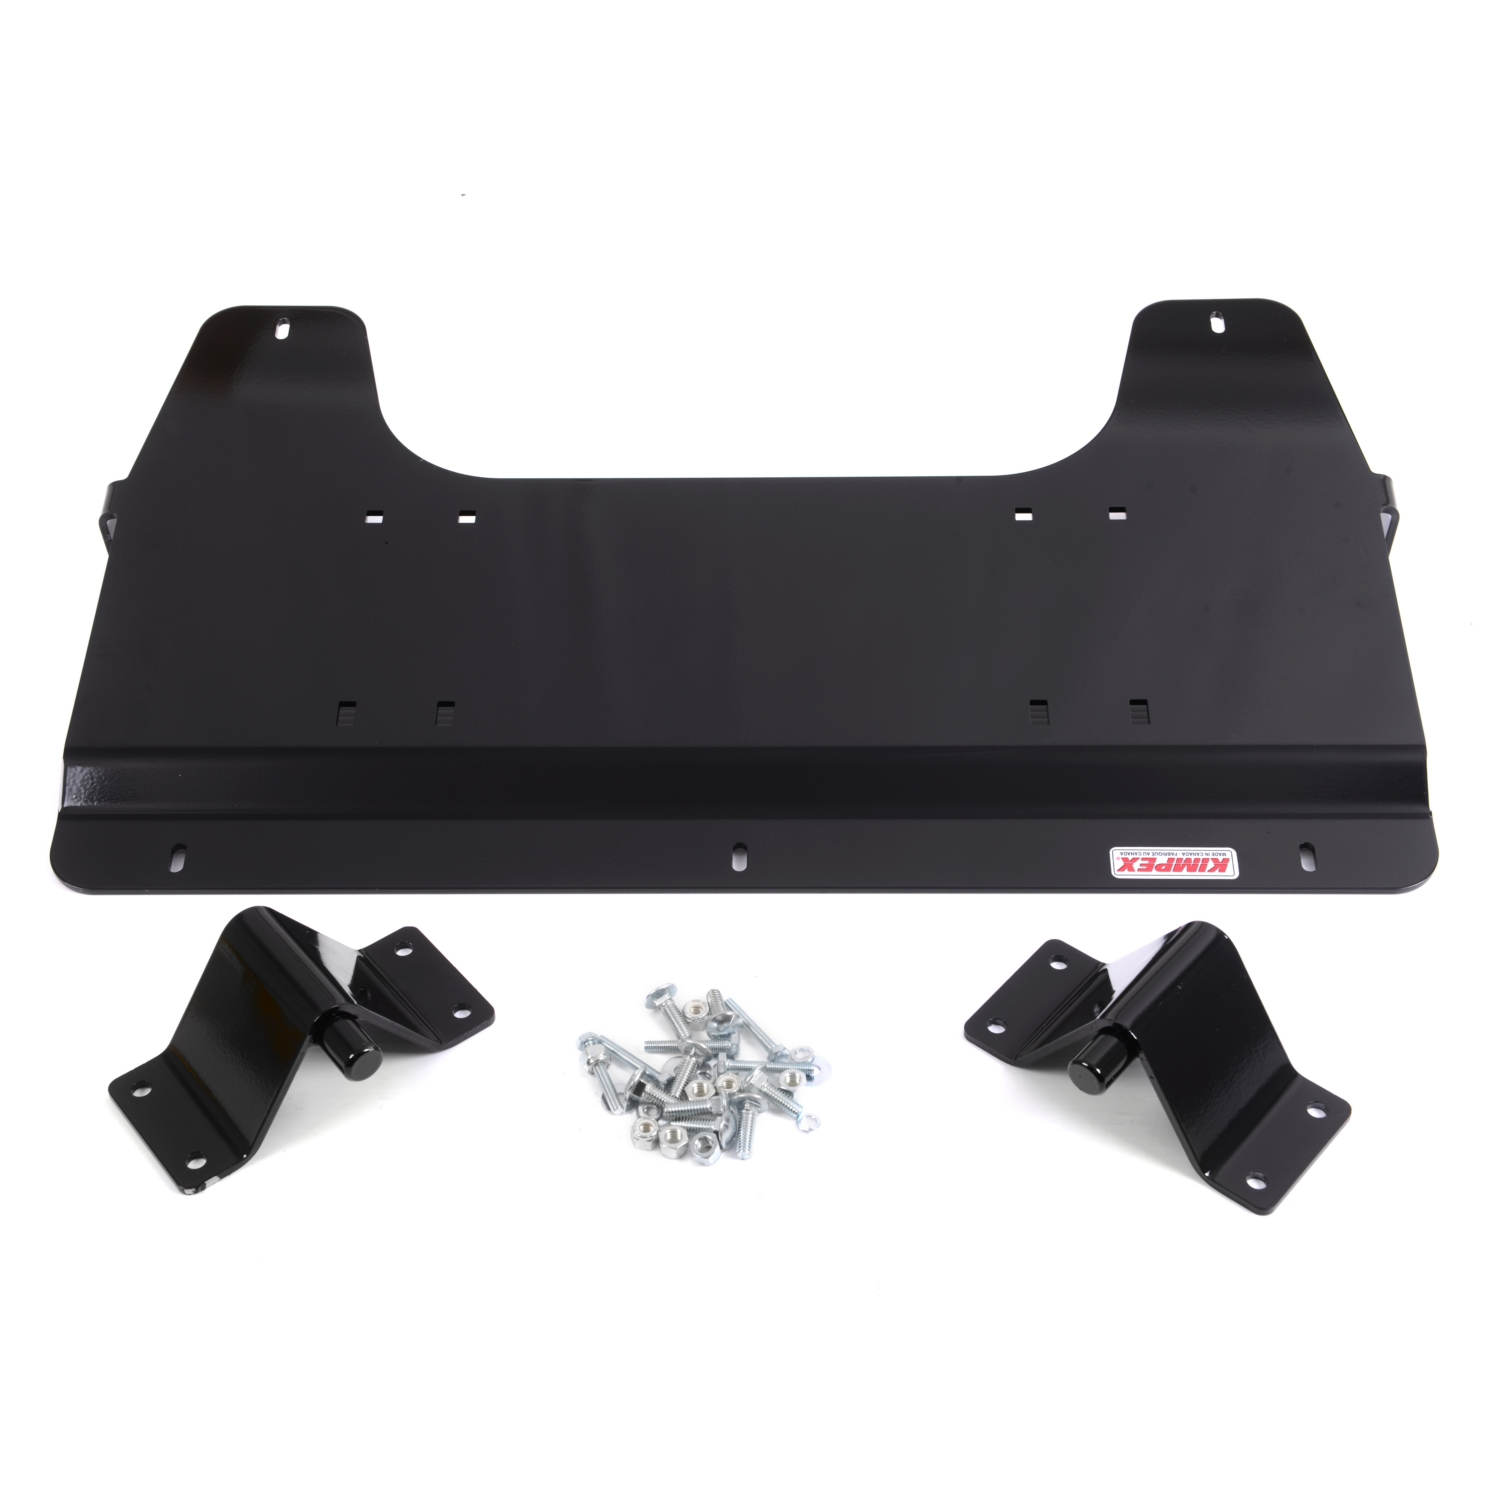 CLICK N GO CNG 1 Snow Plow Bracket for UTV Black  #073472